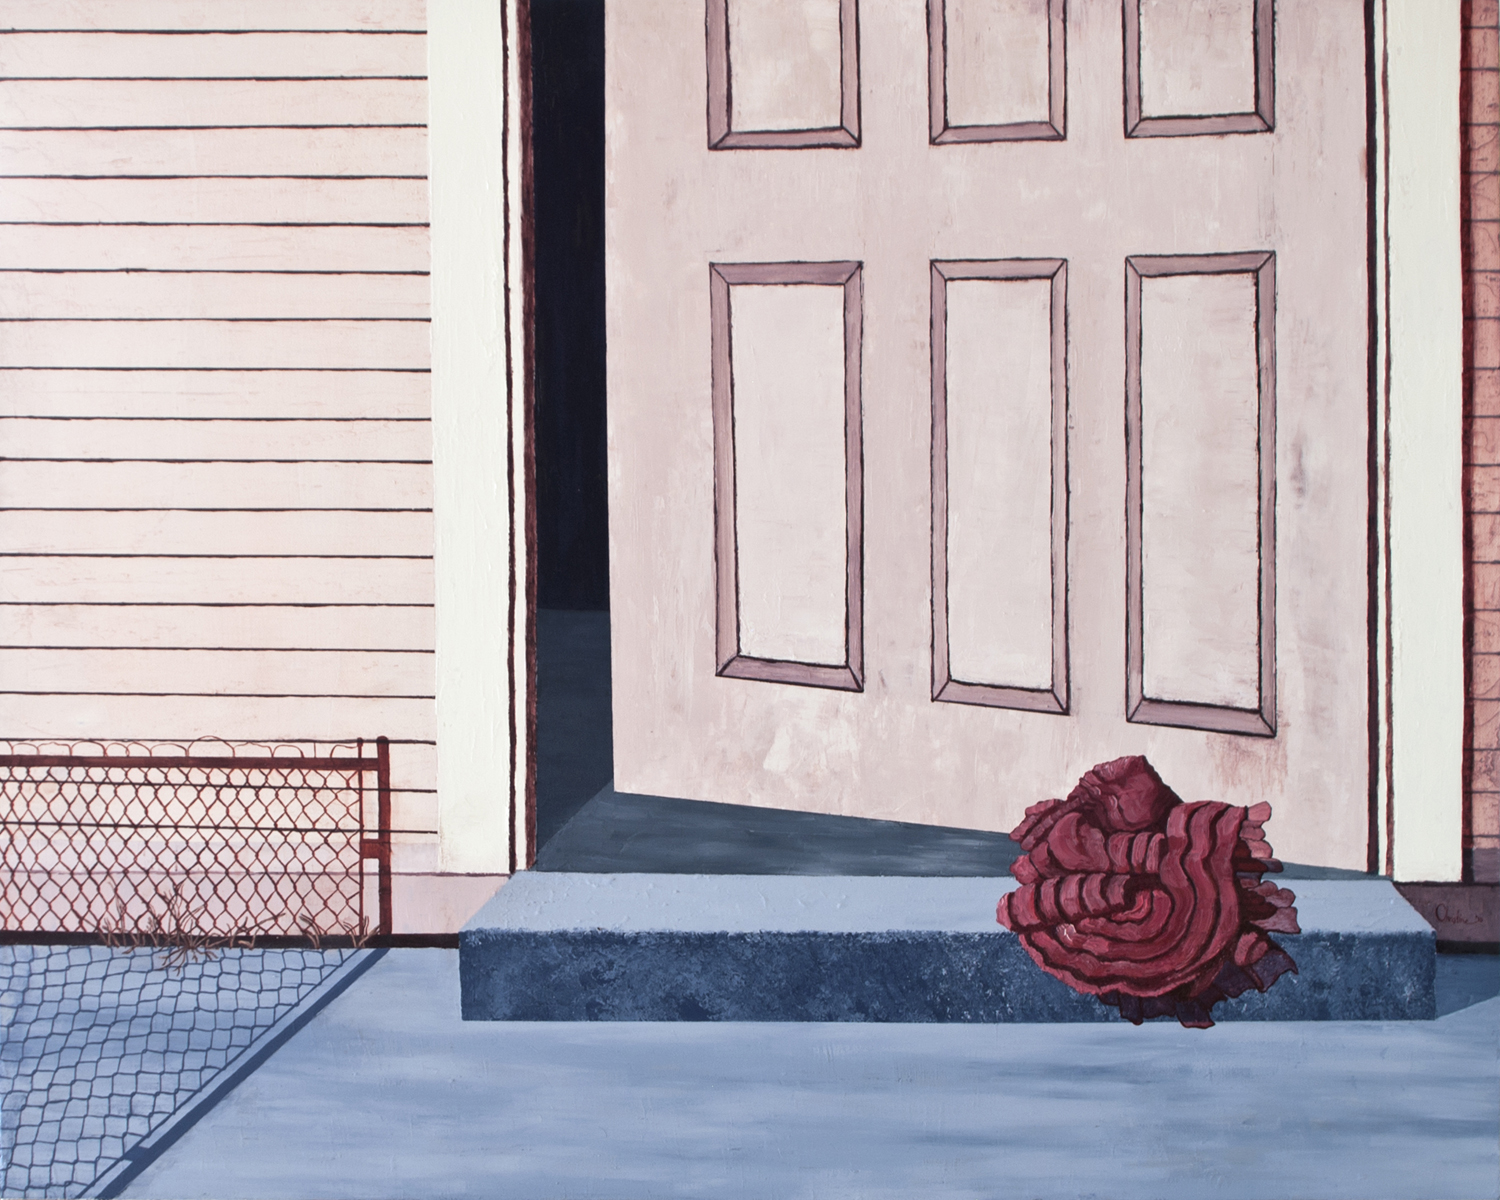 C. Rasmussen | Out | 2015 | Oil on canvas | 24 x 30 inches | Sold. From my  She Was Just a Dream  series.